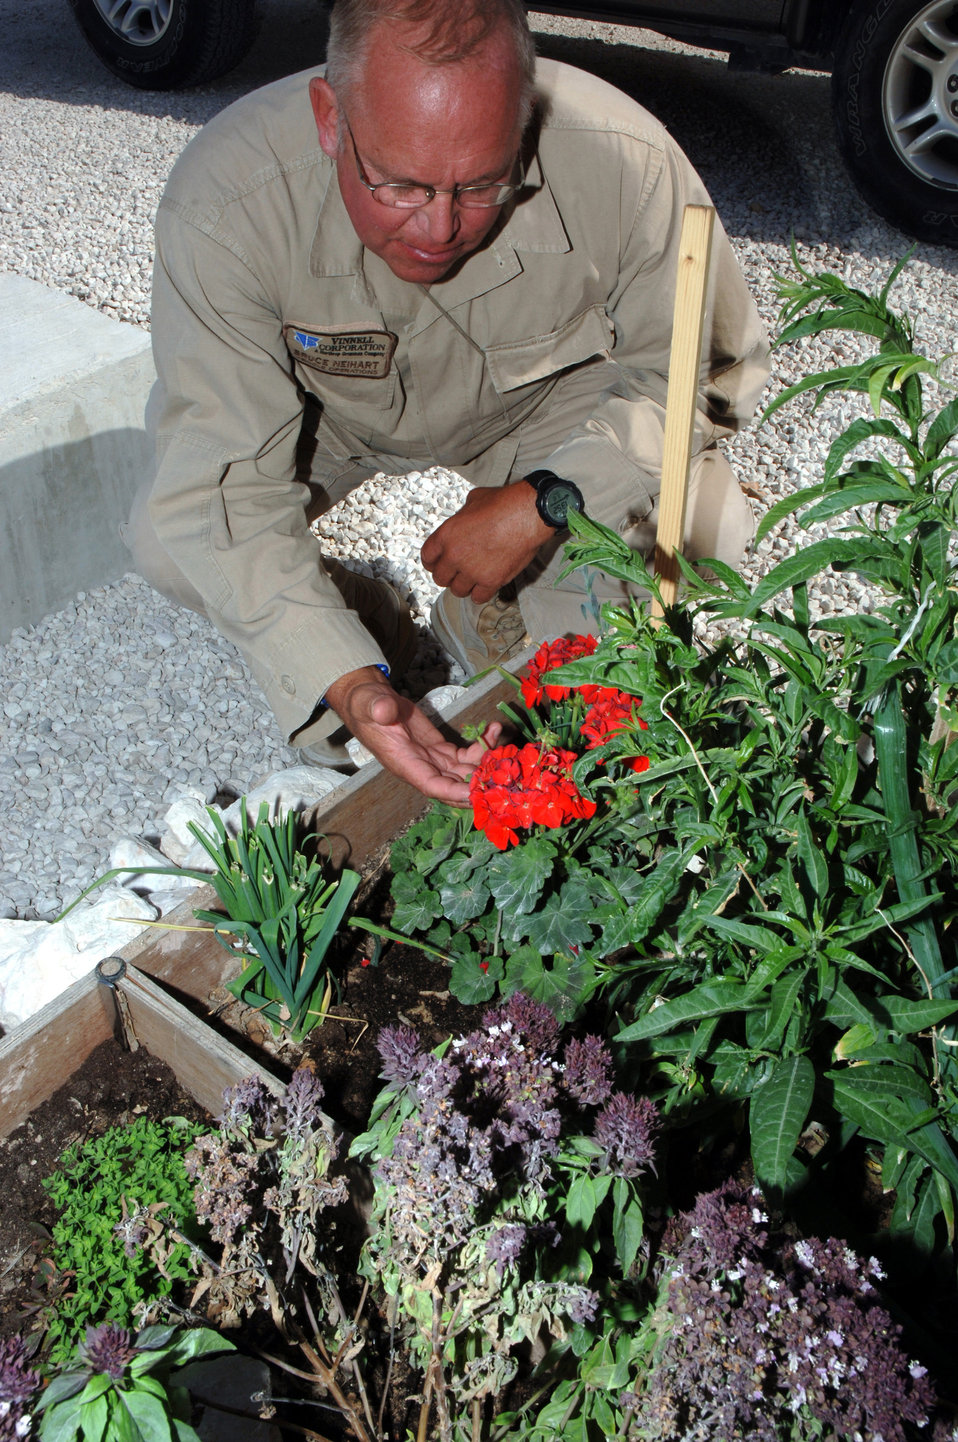 Garden in the desert